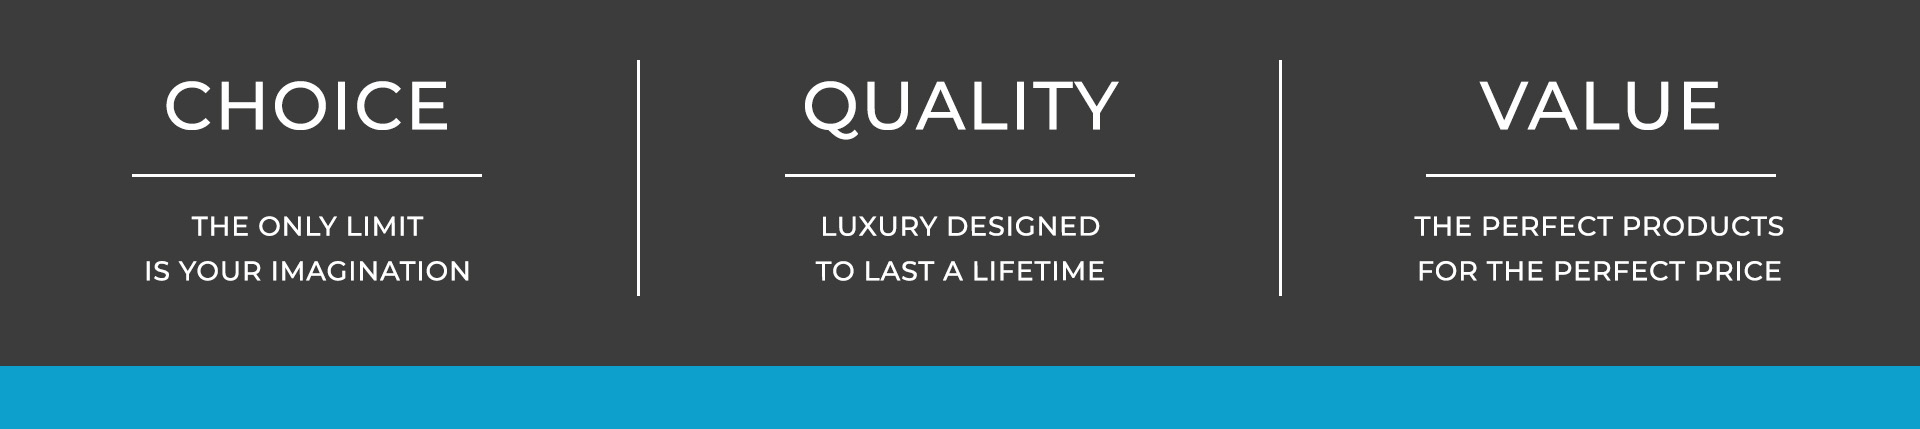 Dream bathrooms, made real. Relax in the bathroom of your dreams with our luxurious range of suites and contemporary fittings. Shop now. Save on Style